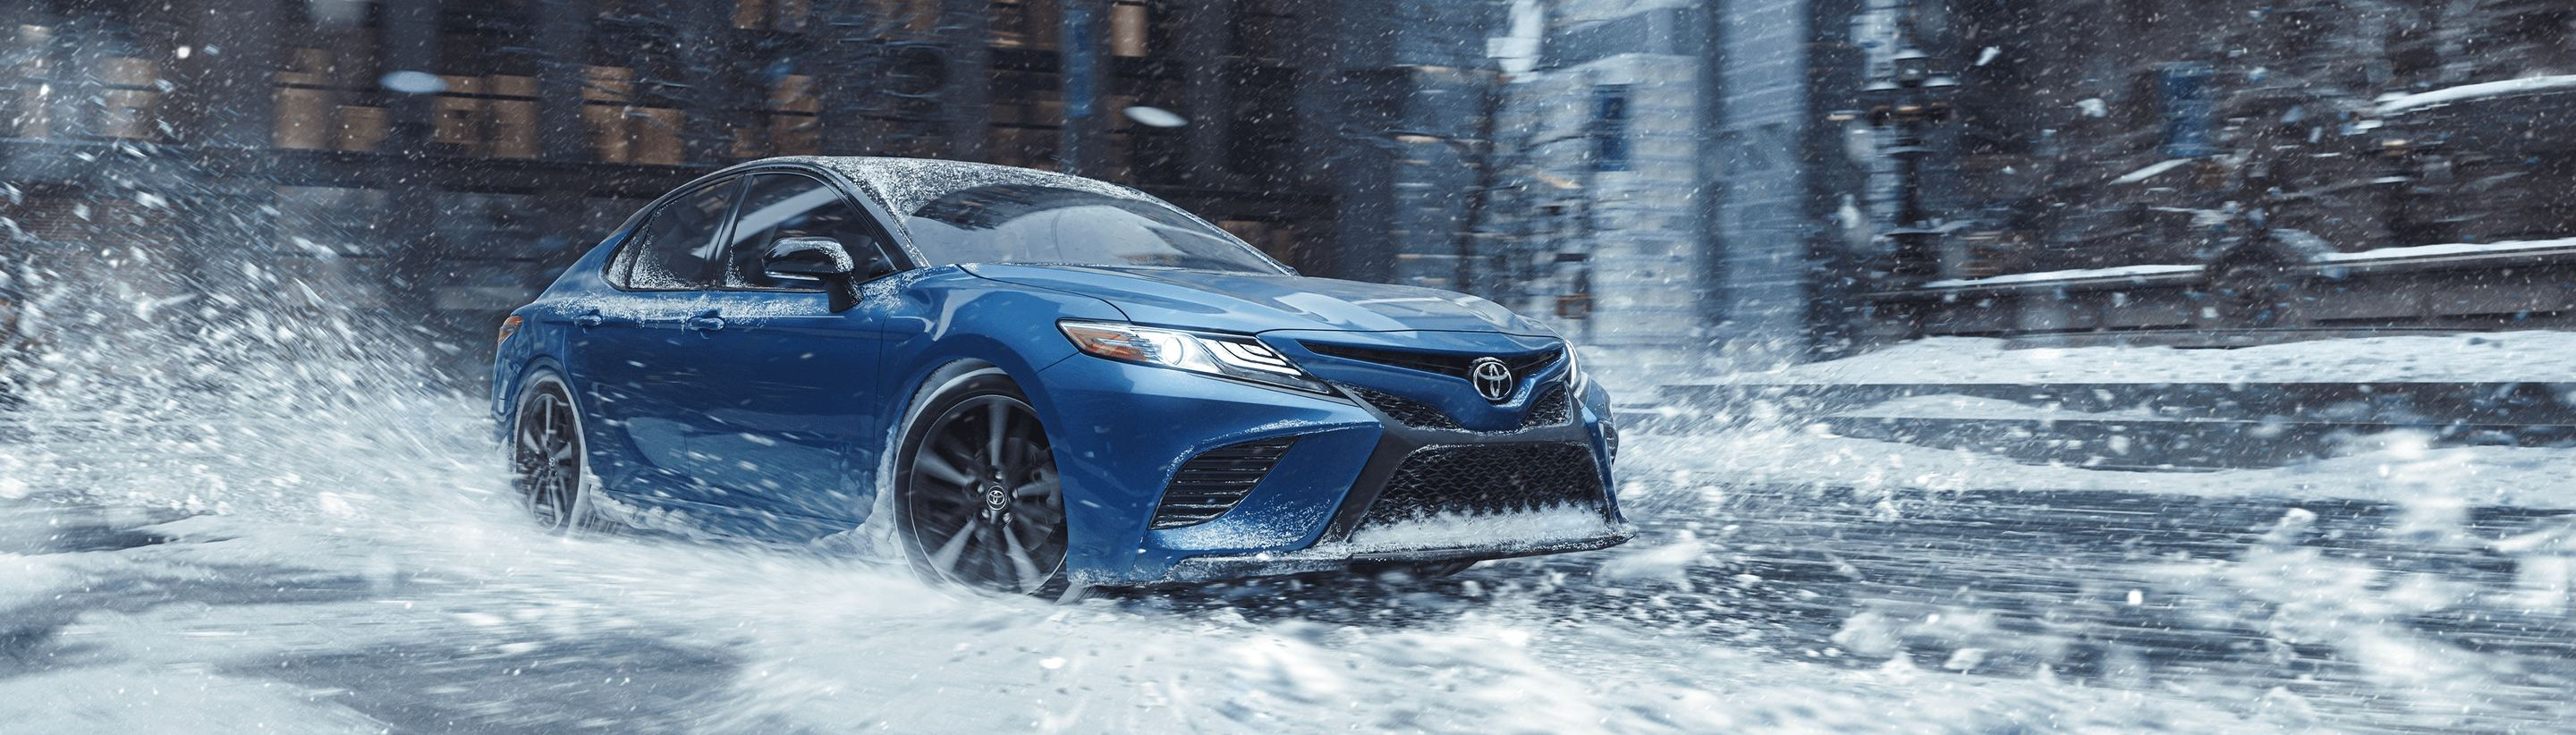 2020 Toyota Camry Lease near Pittsburgh, PA